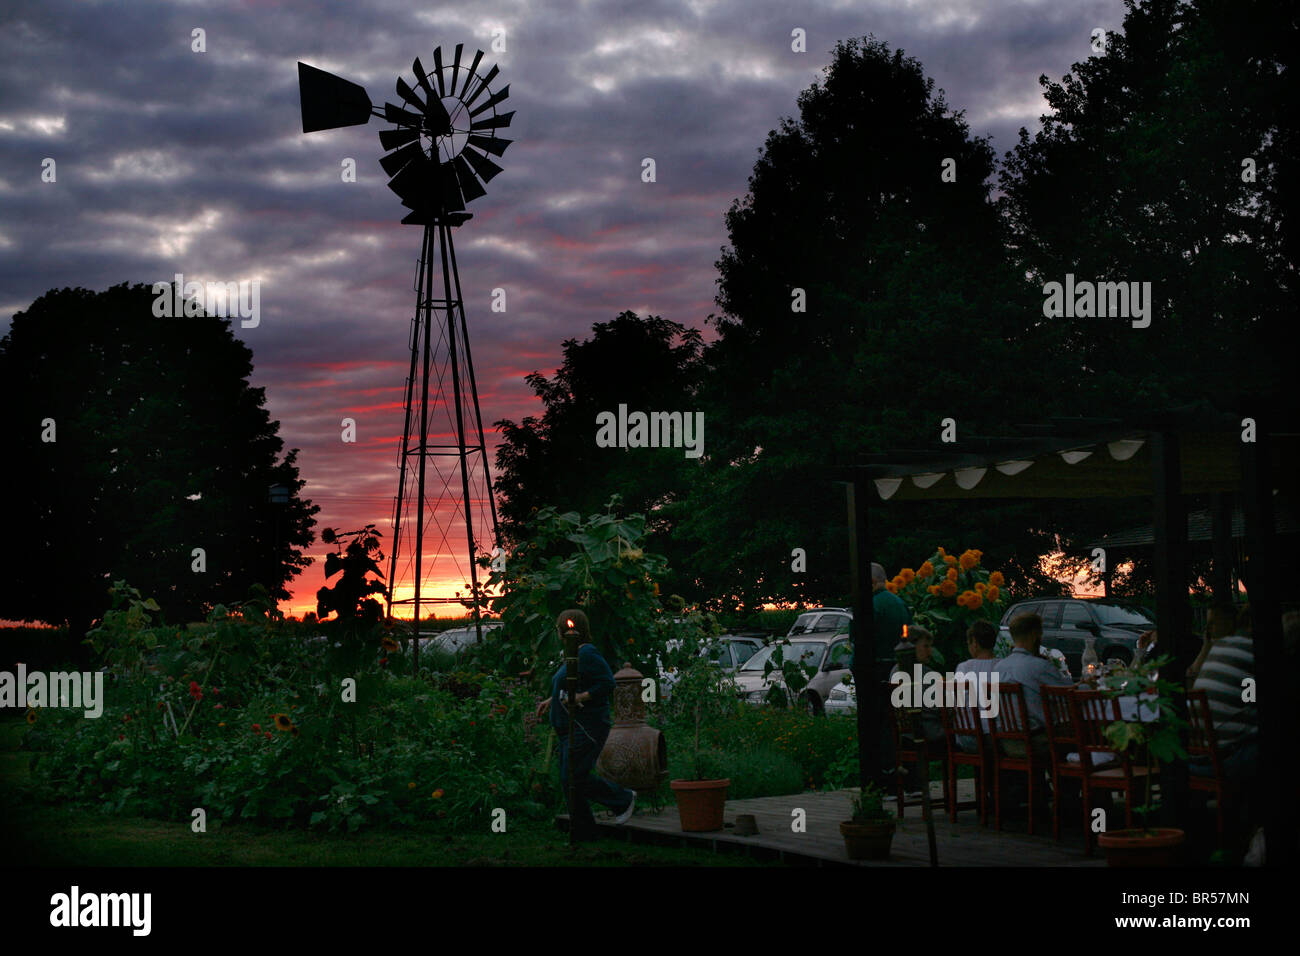 A large group eating outdoors at sunset on a rural farm with a windmill in the background. - Stock Image